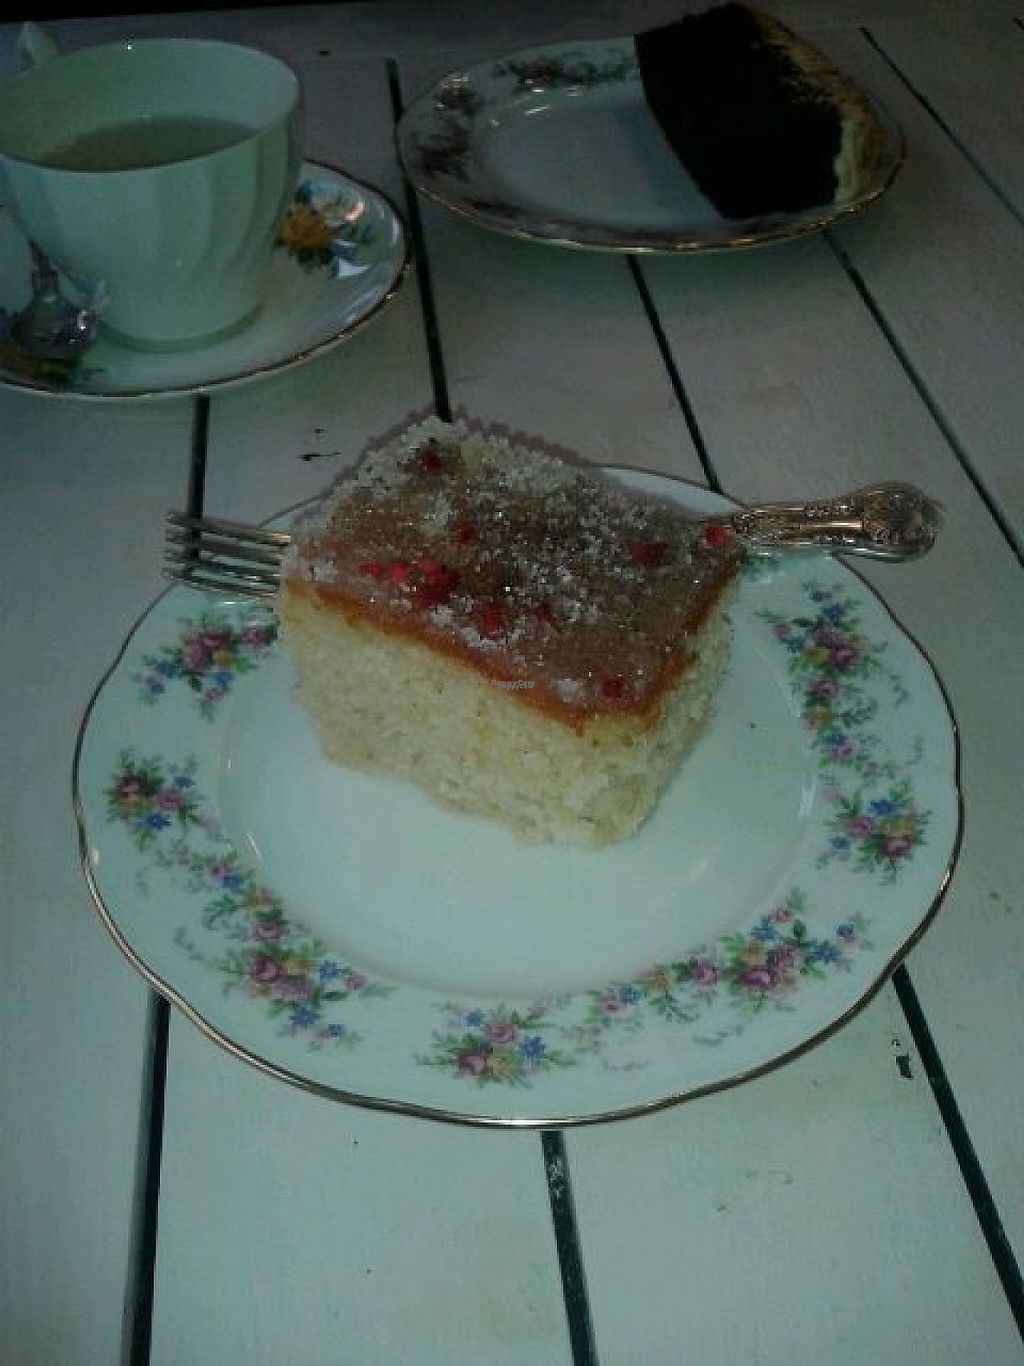 """Photo of Wildflower Creative Kitchen  by <a href=""""/members/profile/deadpledge"""">deadpledge</a> <br/>Lemon drizzle cake <br/> February 6, 2017  - <a href='/contact/abuse/image/82039/223722'>Report</a>"""